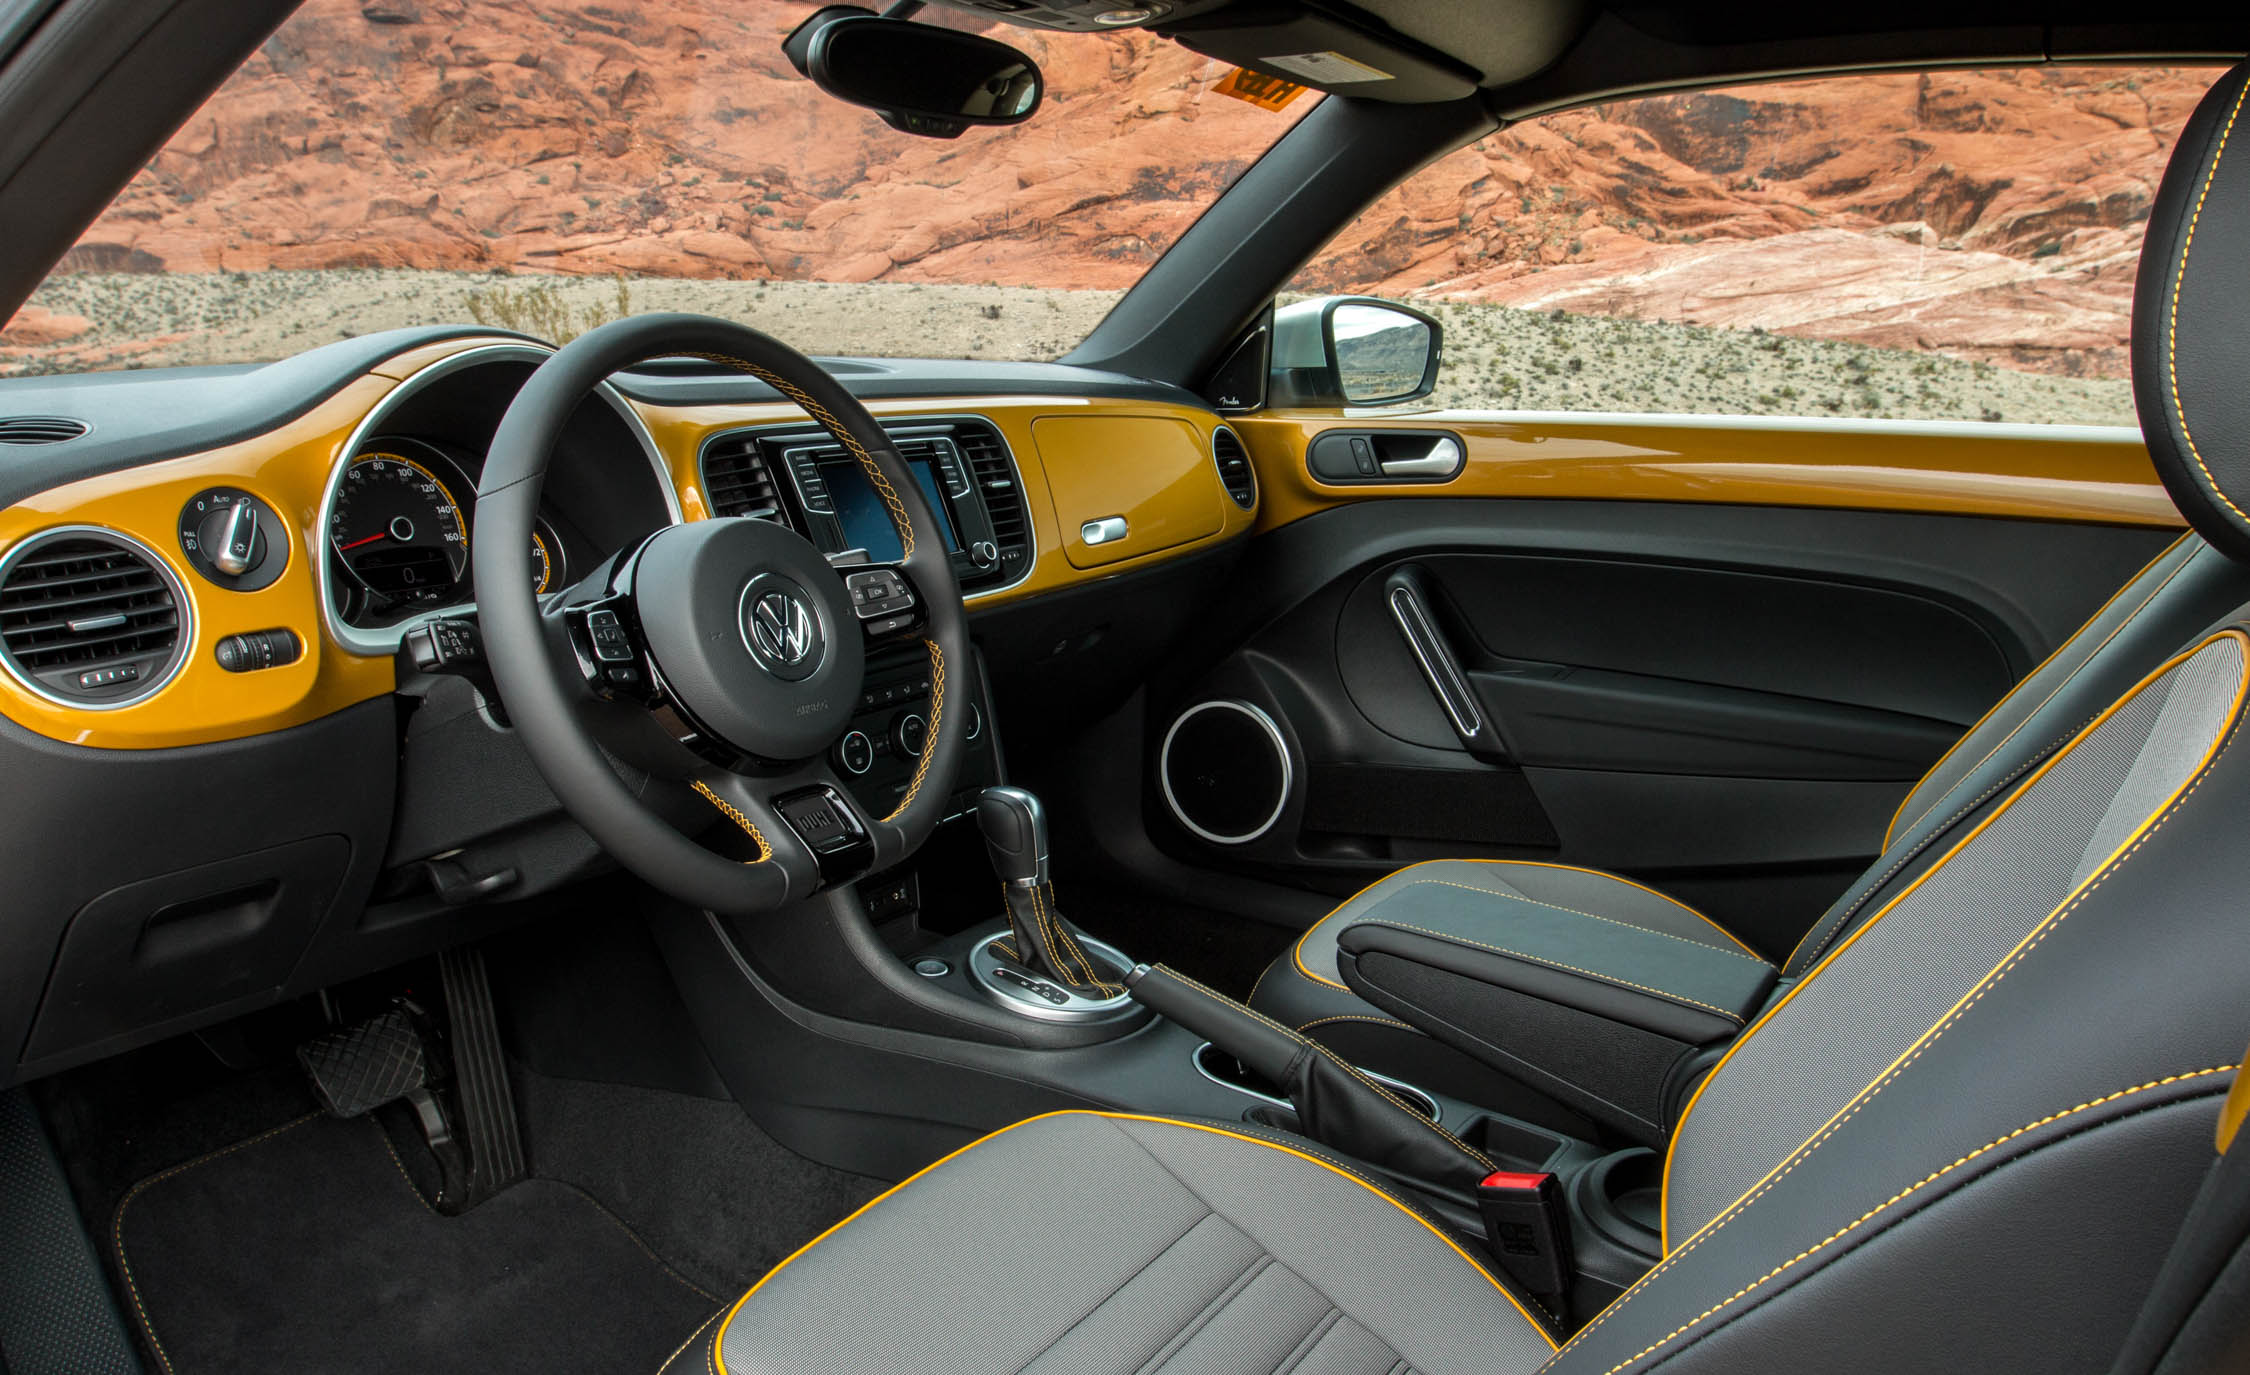 2016 Volkswagen Beetle Dune Interior (Photo 23 of 32)